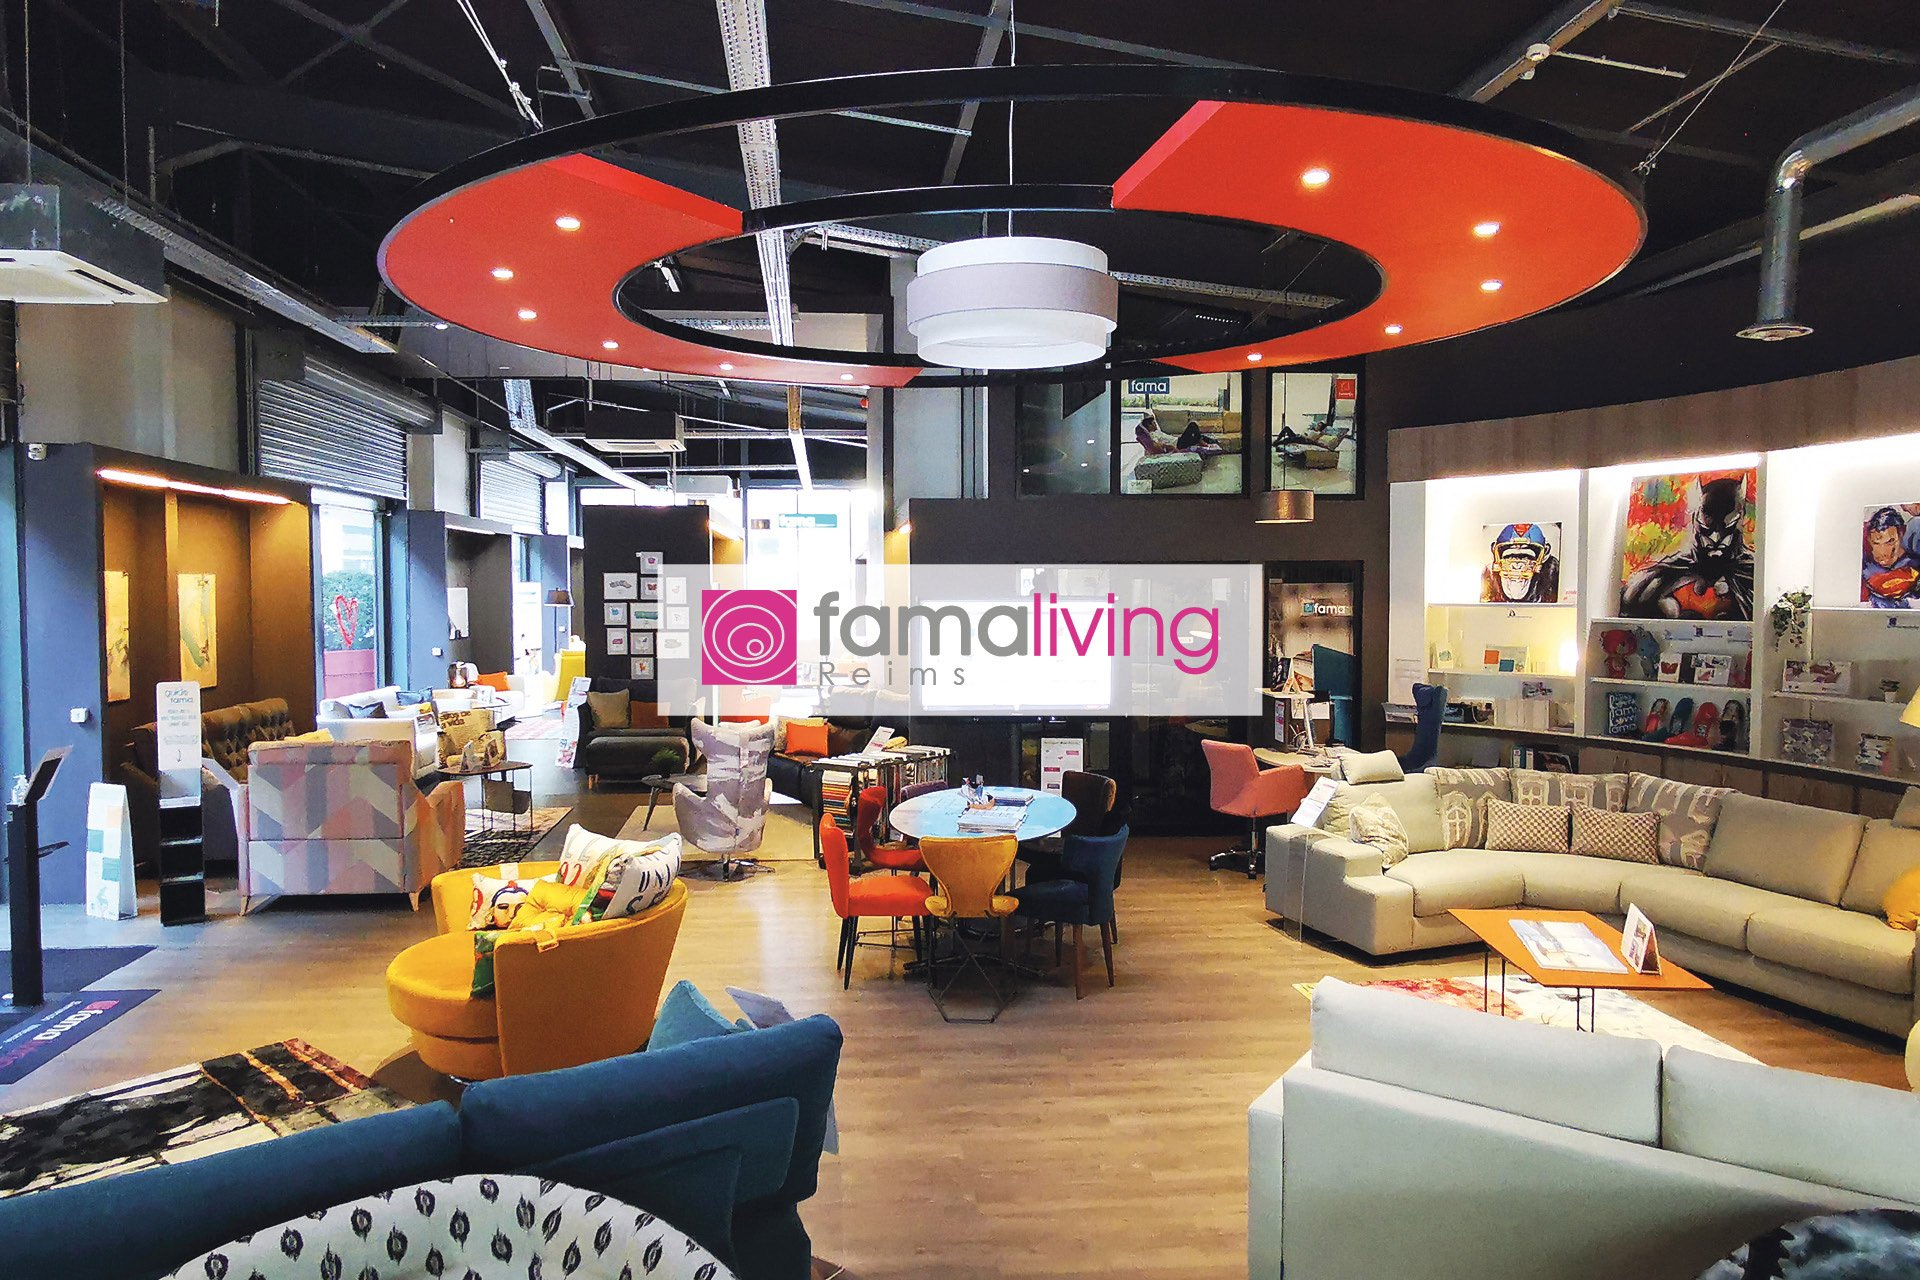 https://www.famaliving.com/reims-en